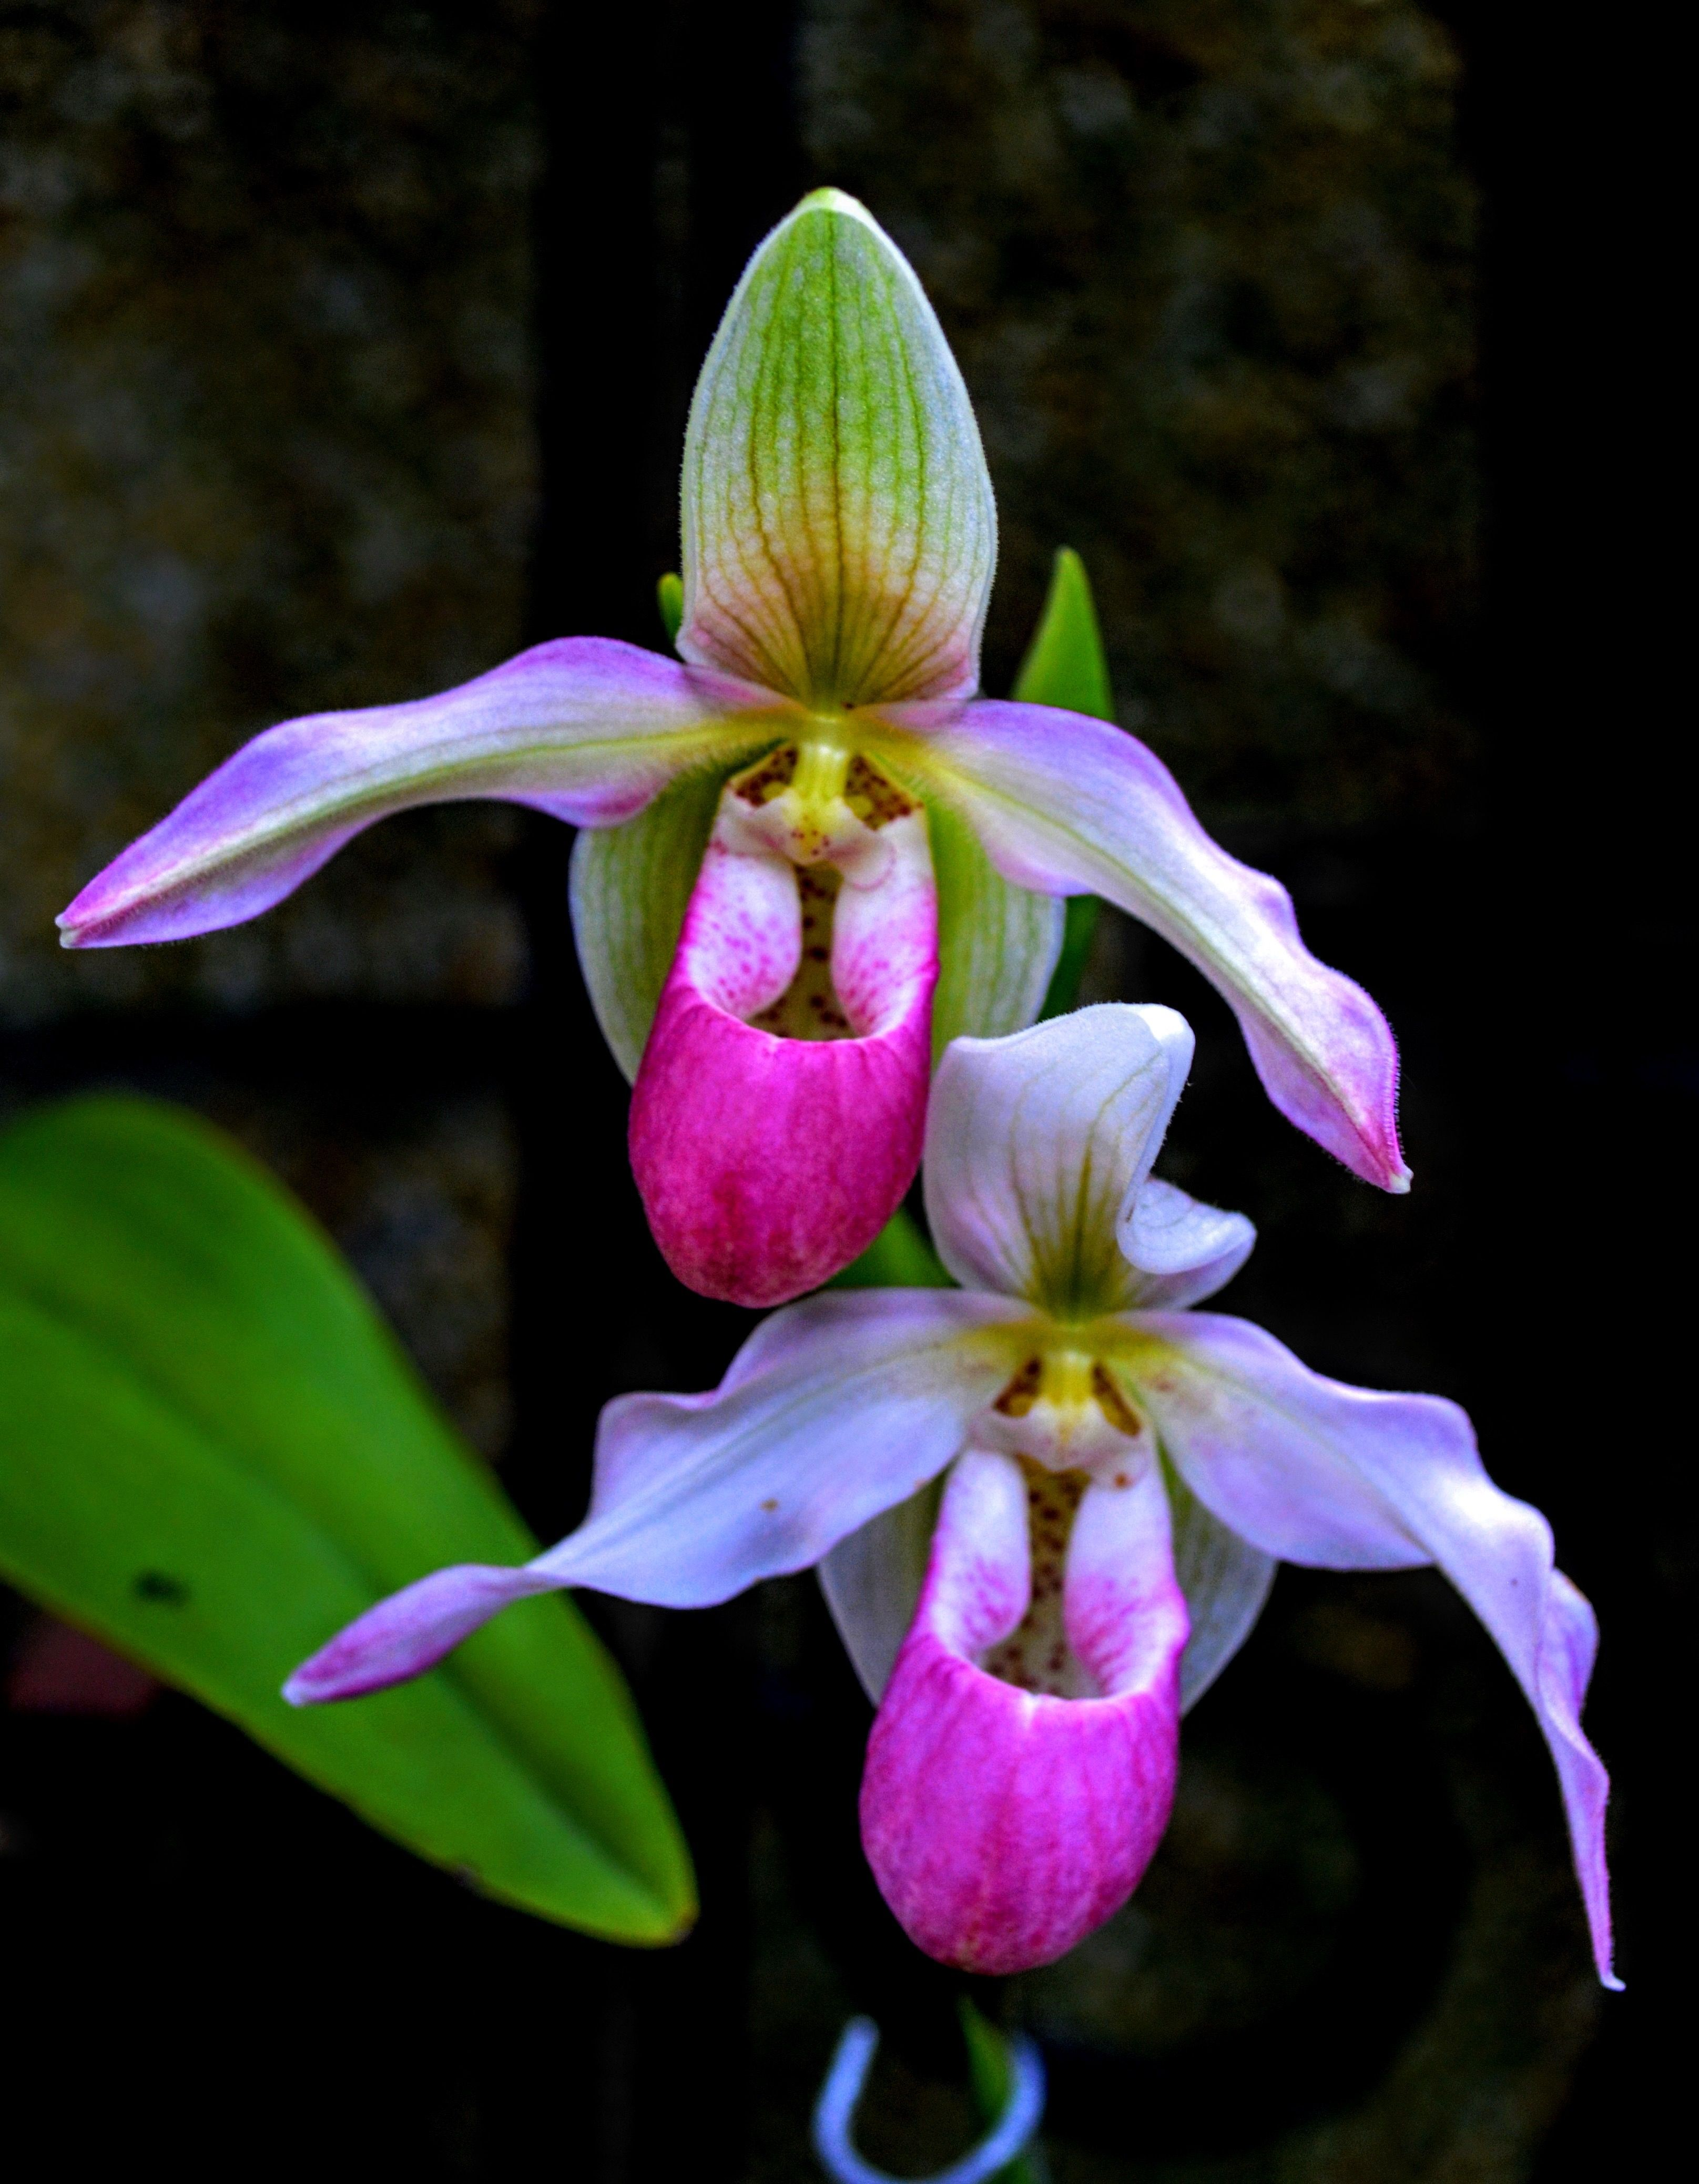 Pin by light on pinterest orchid ladies slippers and orchid flowers pink orchids nature plants flowers nature hawaii flowers unusual flowers beautiful flowers orchidaceae womens slippers raw beauty izmirmasajfo